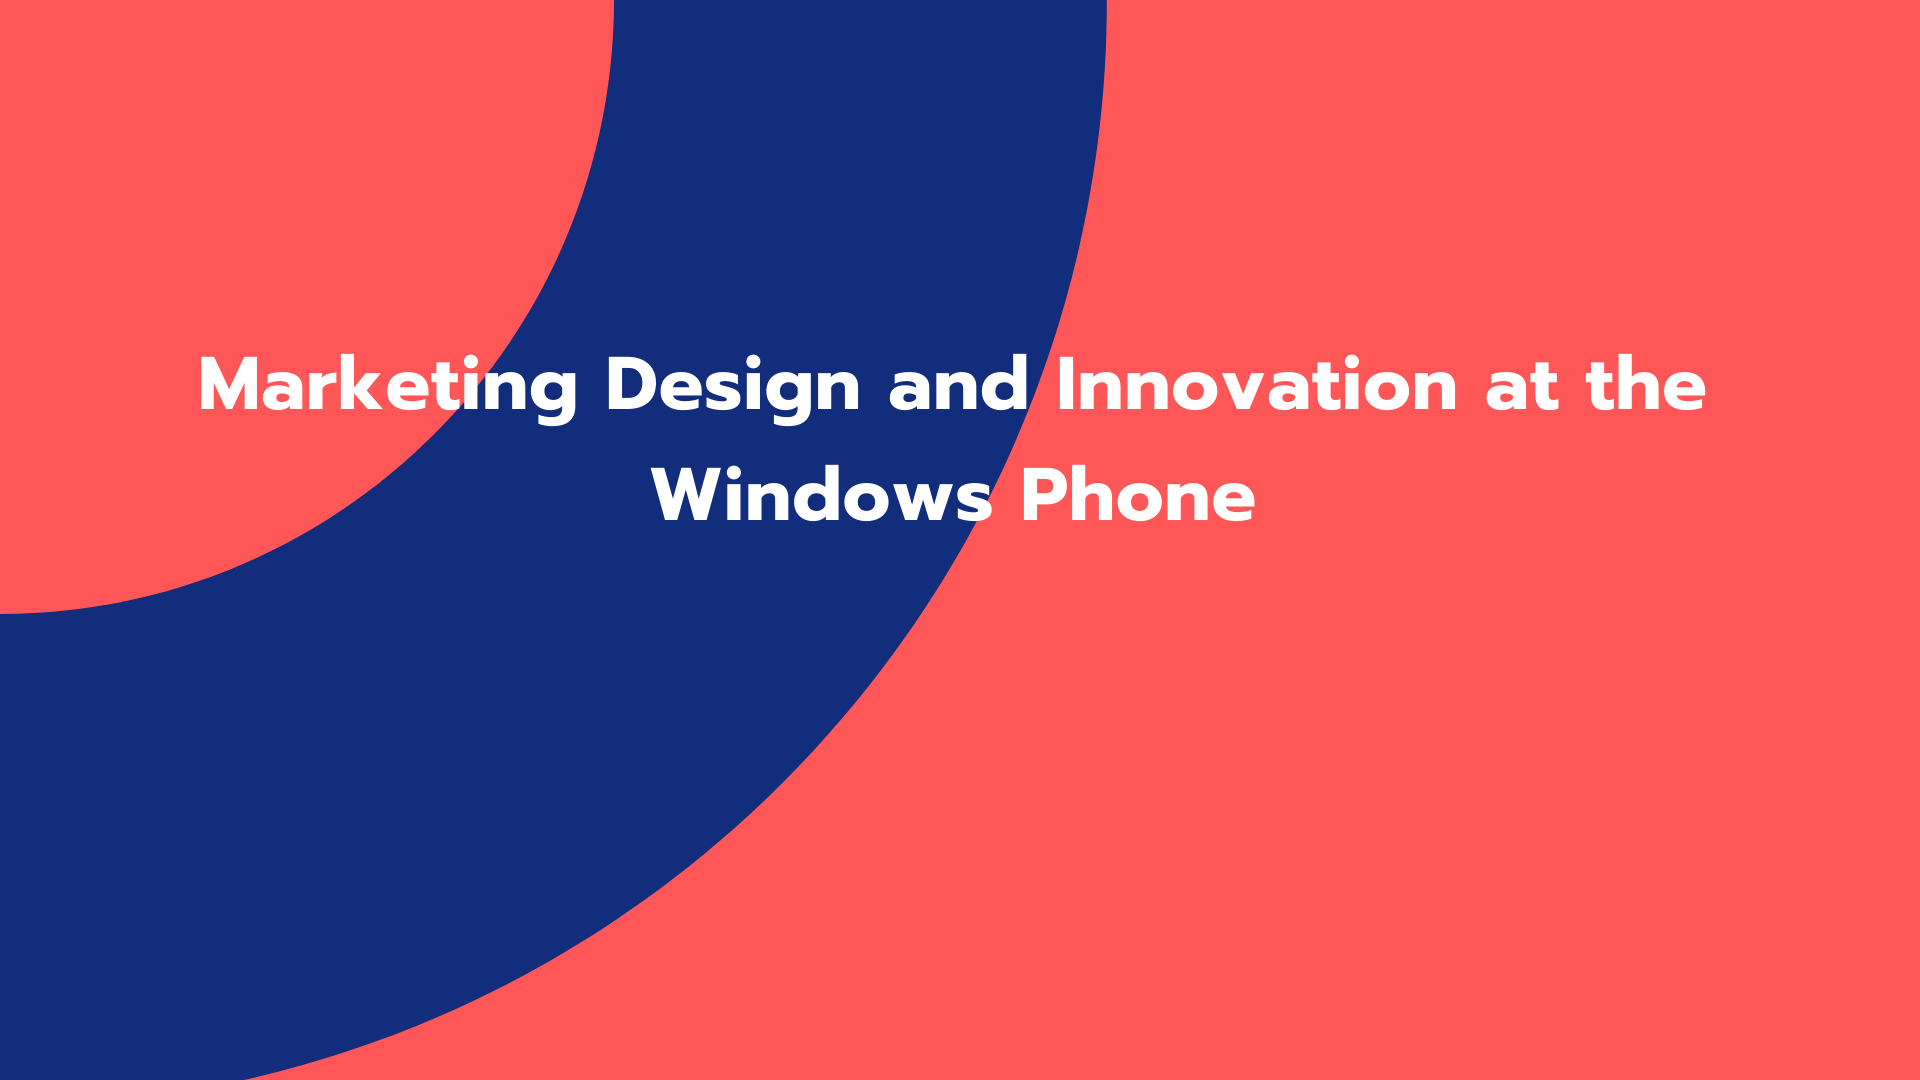 Marketing Design and Innovation at the Windows Phone